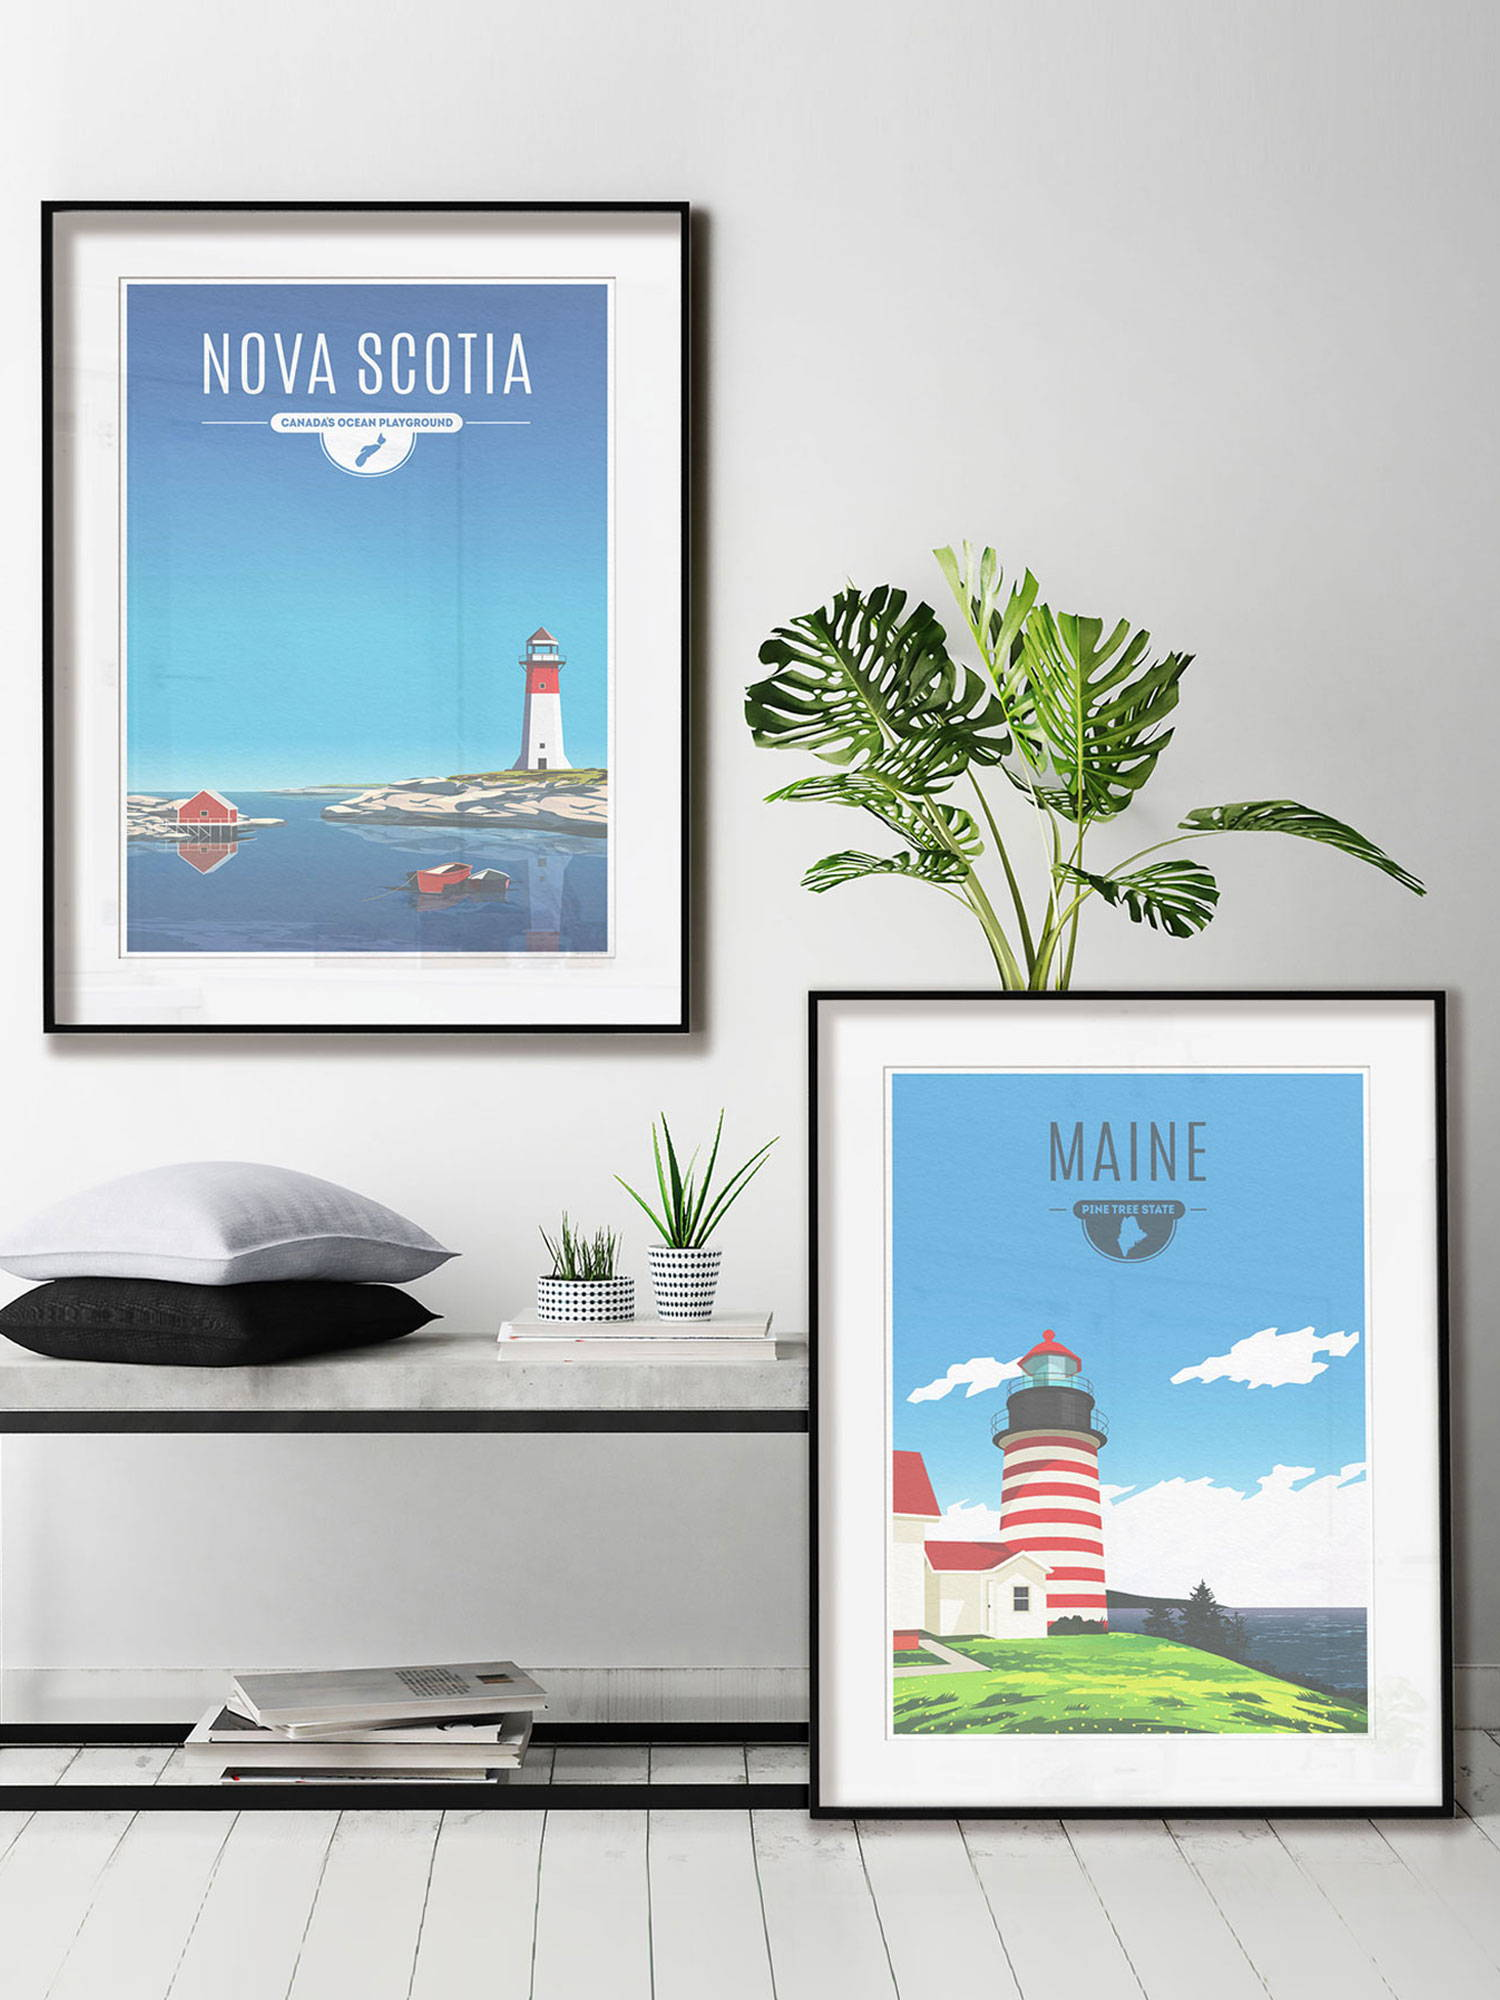 Fine art prints of the province of Nova Scotia and the state of Maine